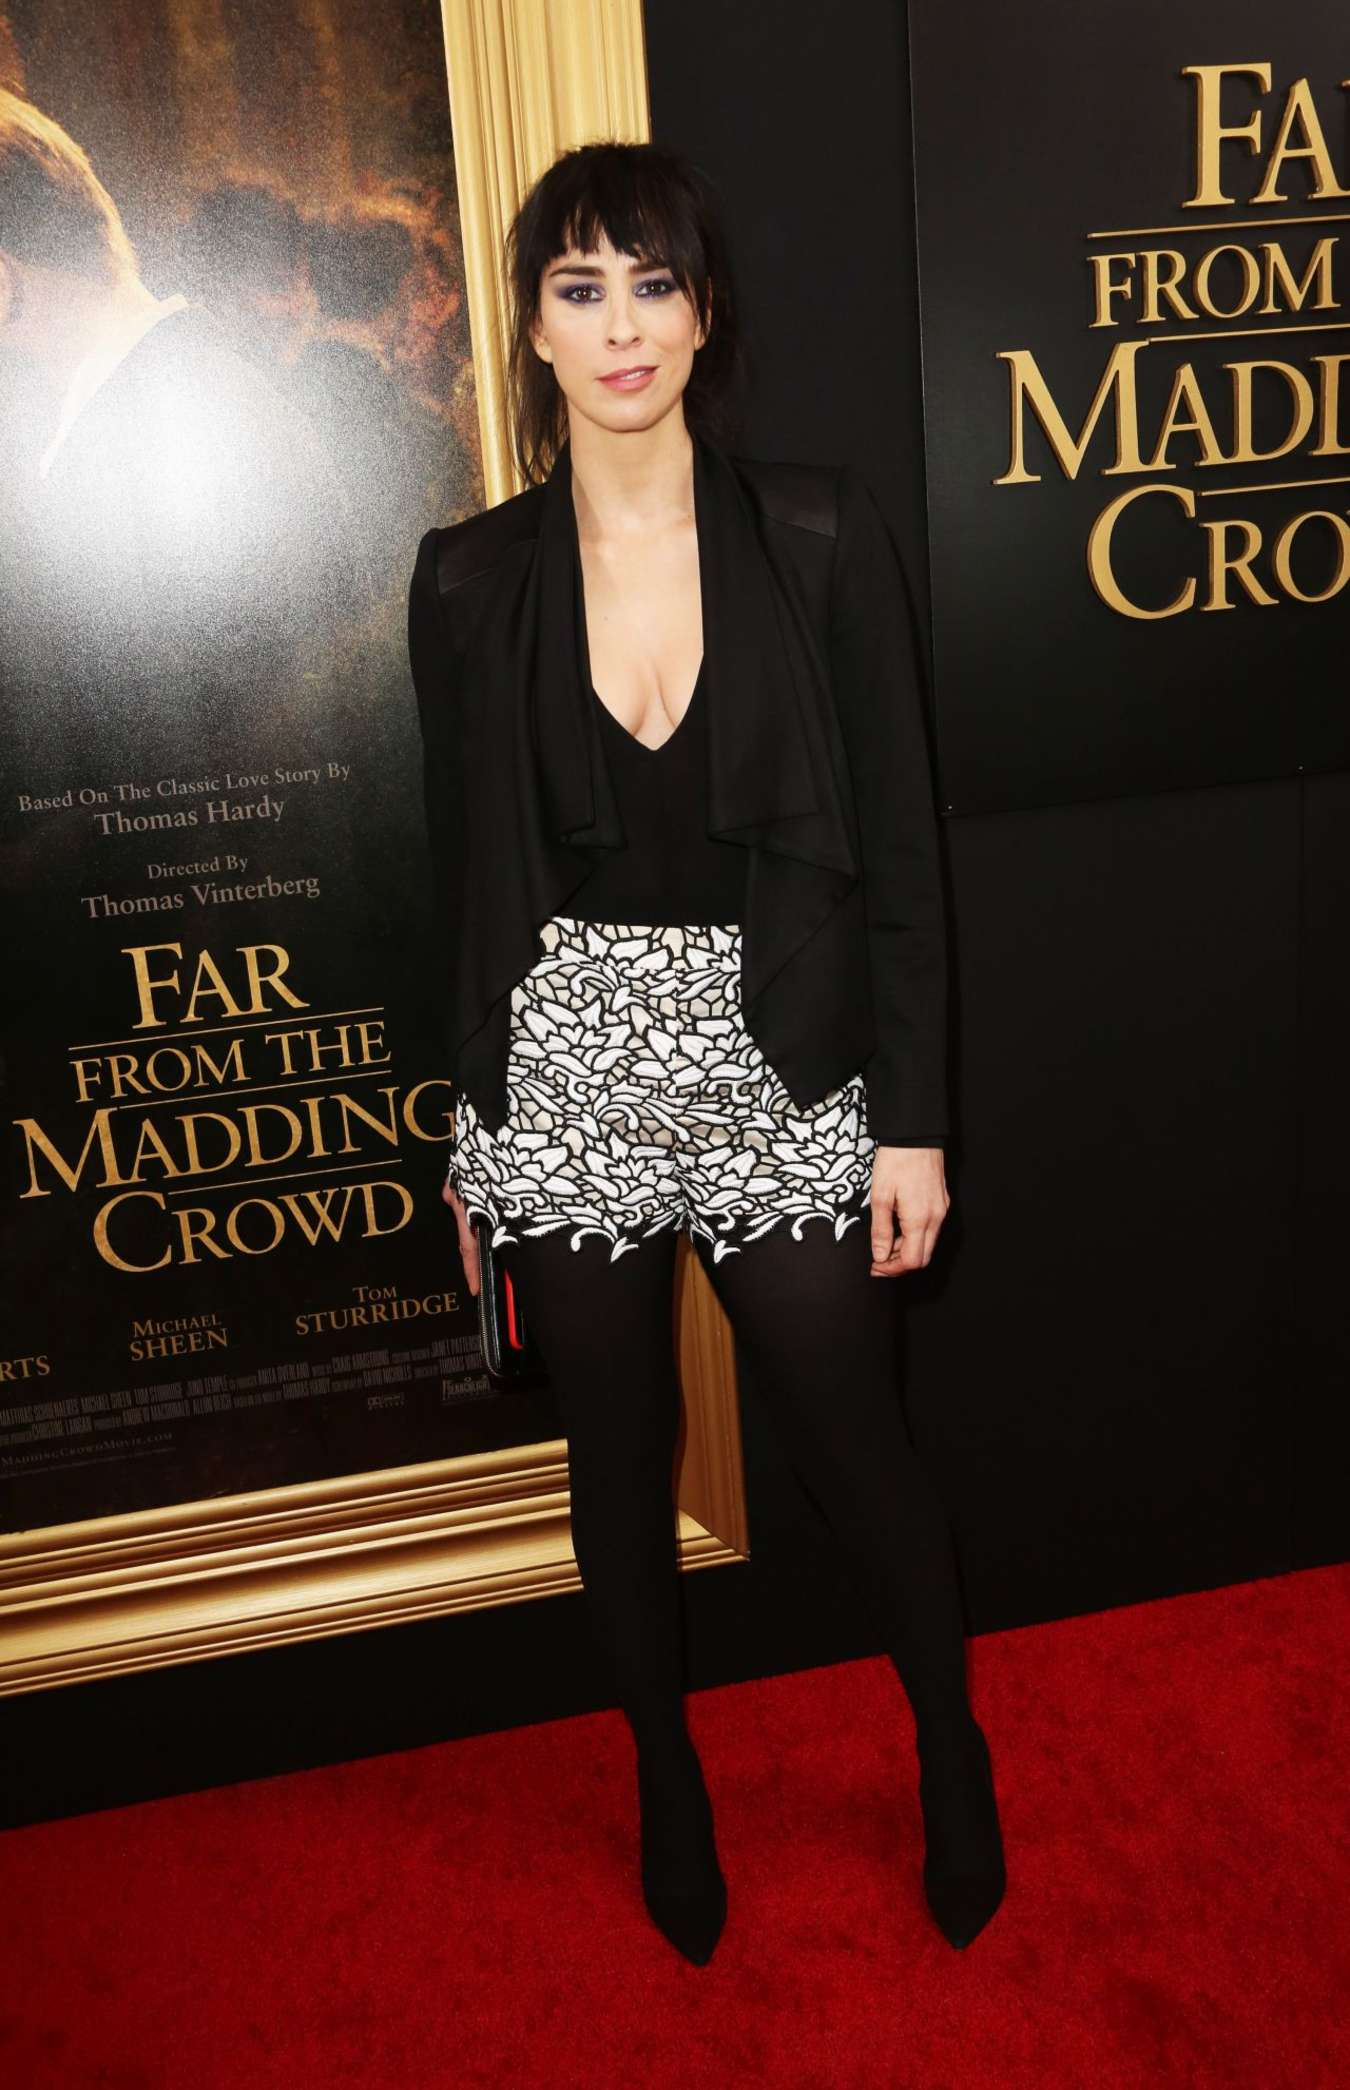 Sarah Silverman Far From The Madding Crowd Premiere in New York City